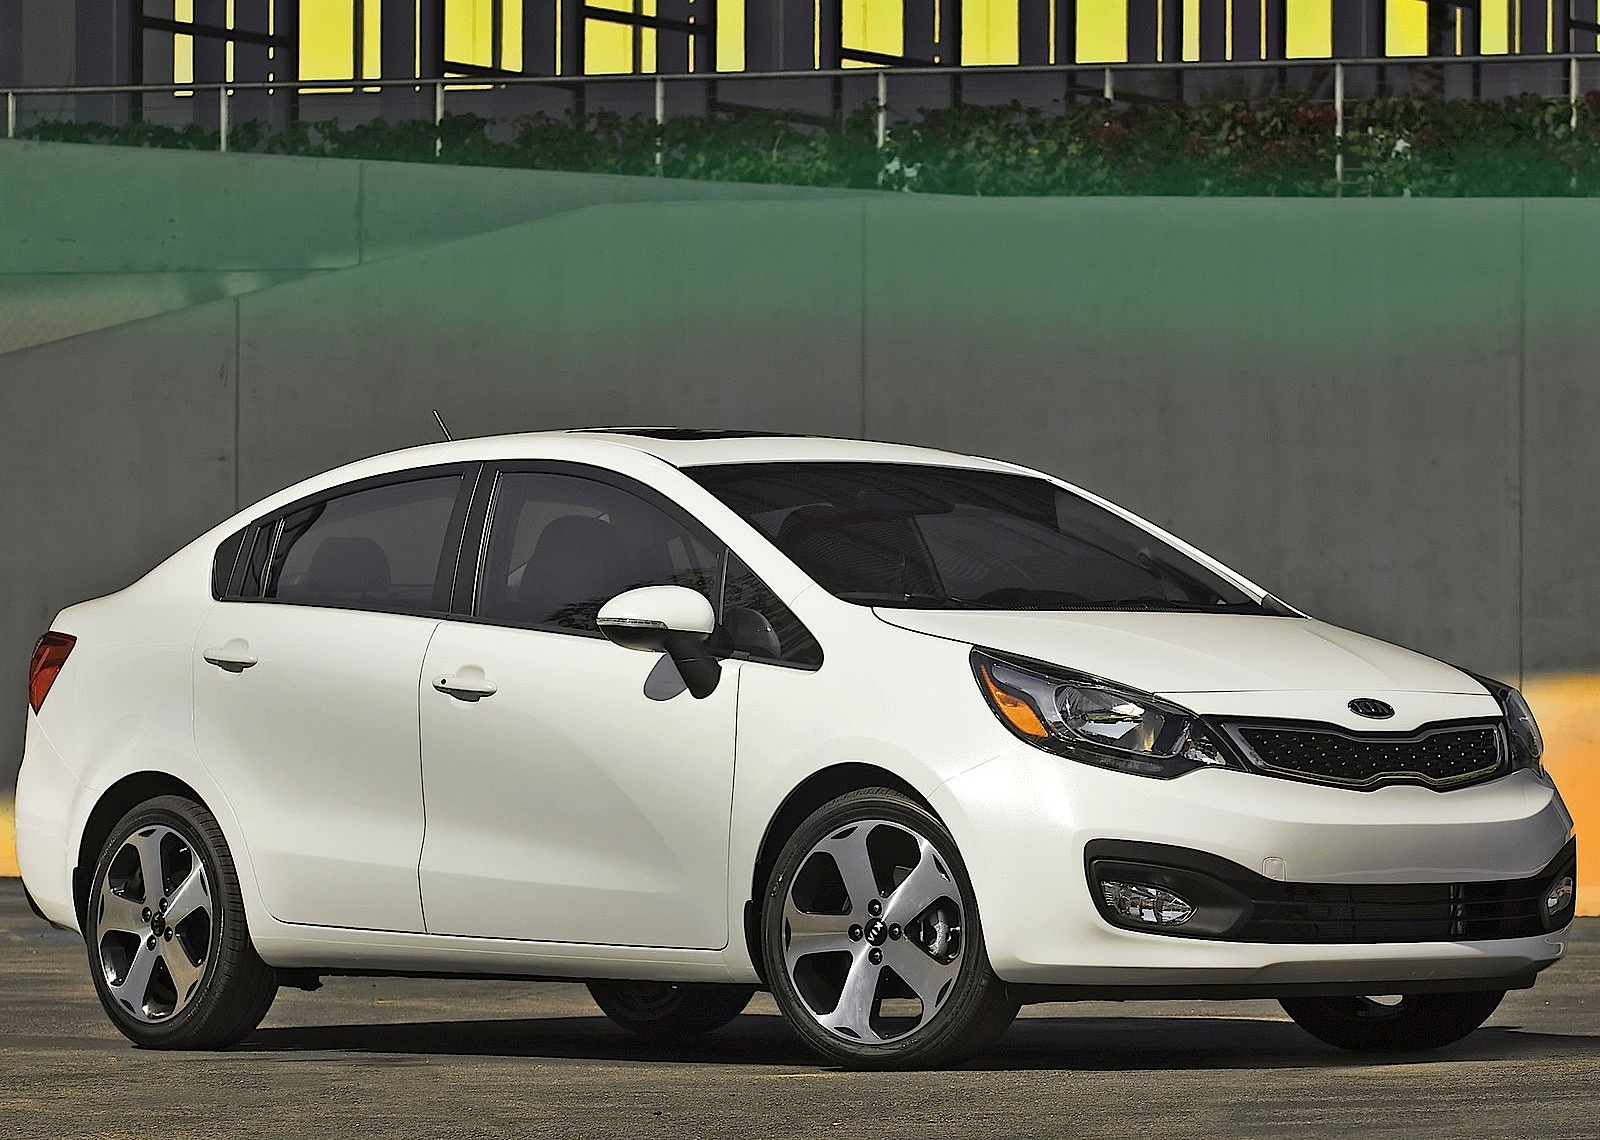 Kia Rio 5 >> KIA Rio Sedan specs & photos - 2011, 2012, 2013, 2014 ...